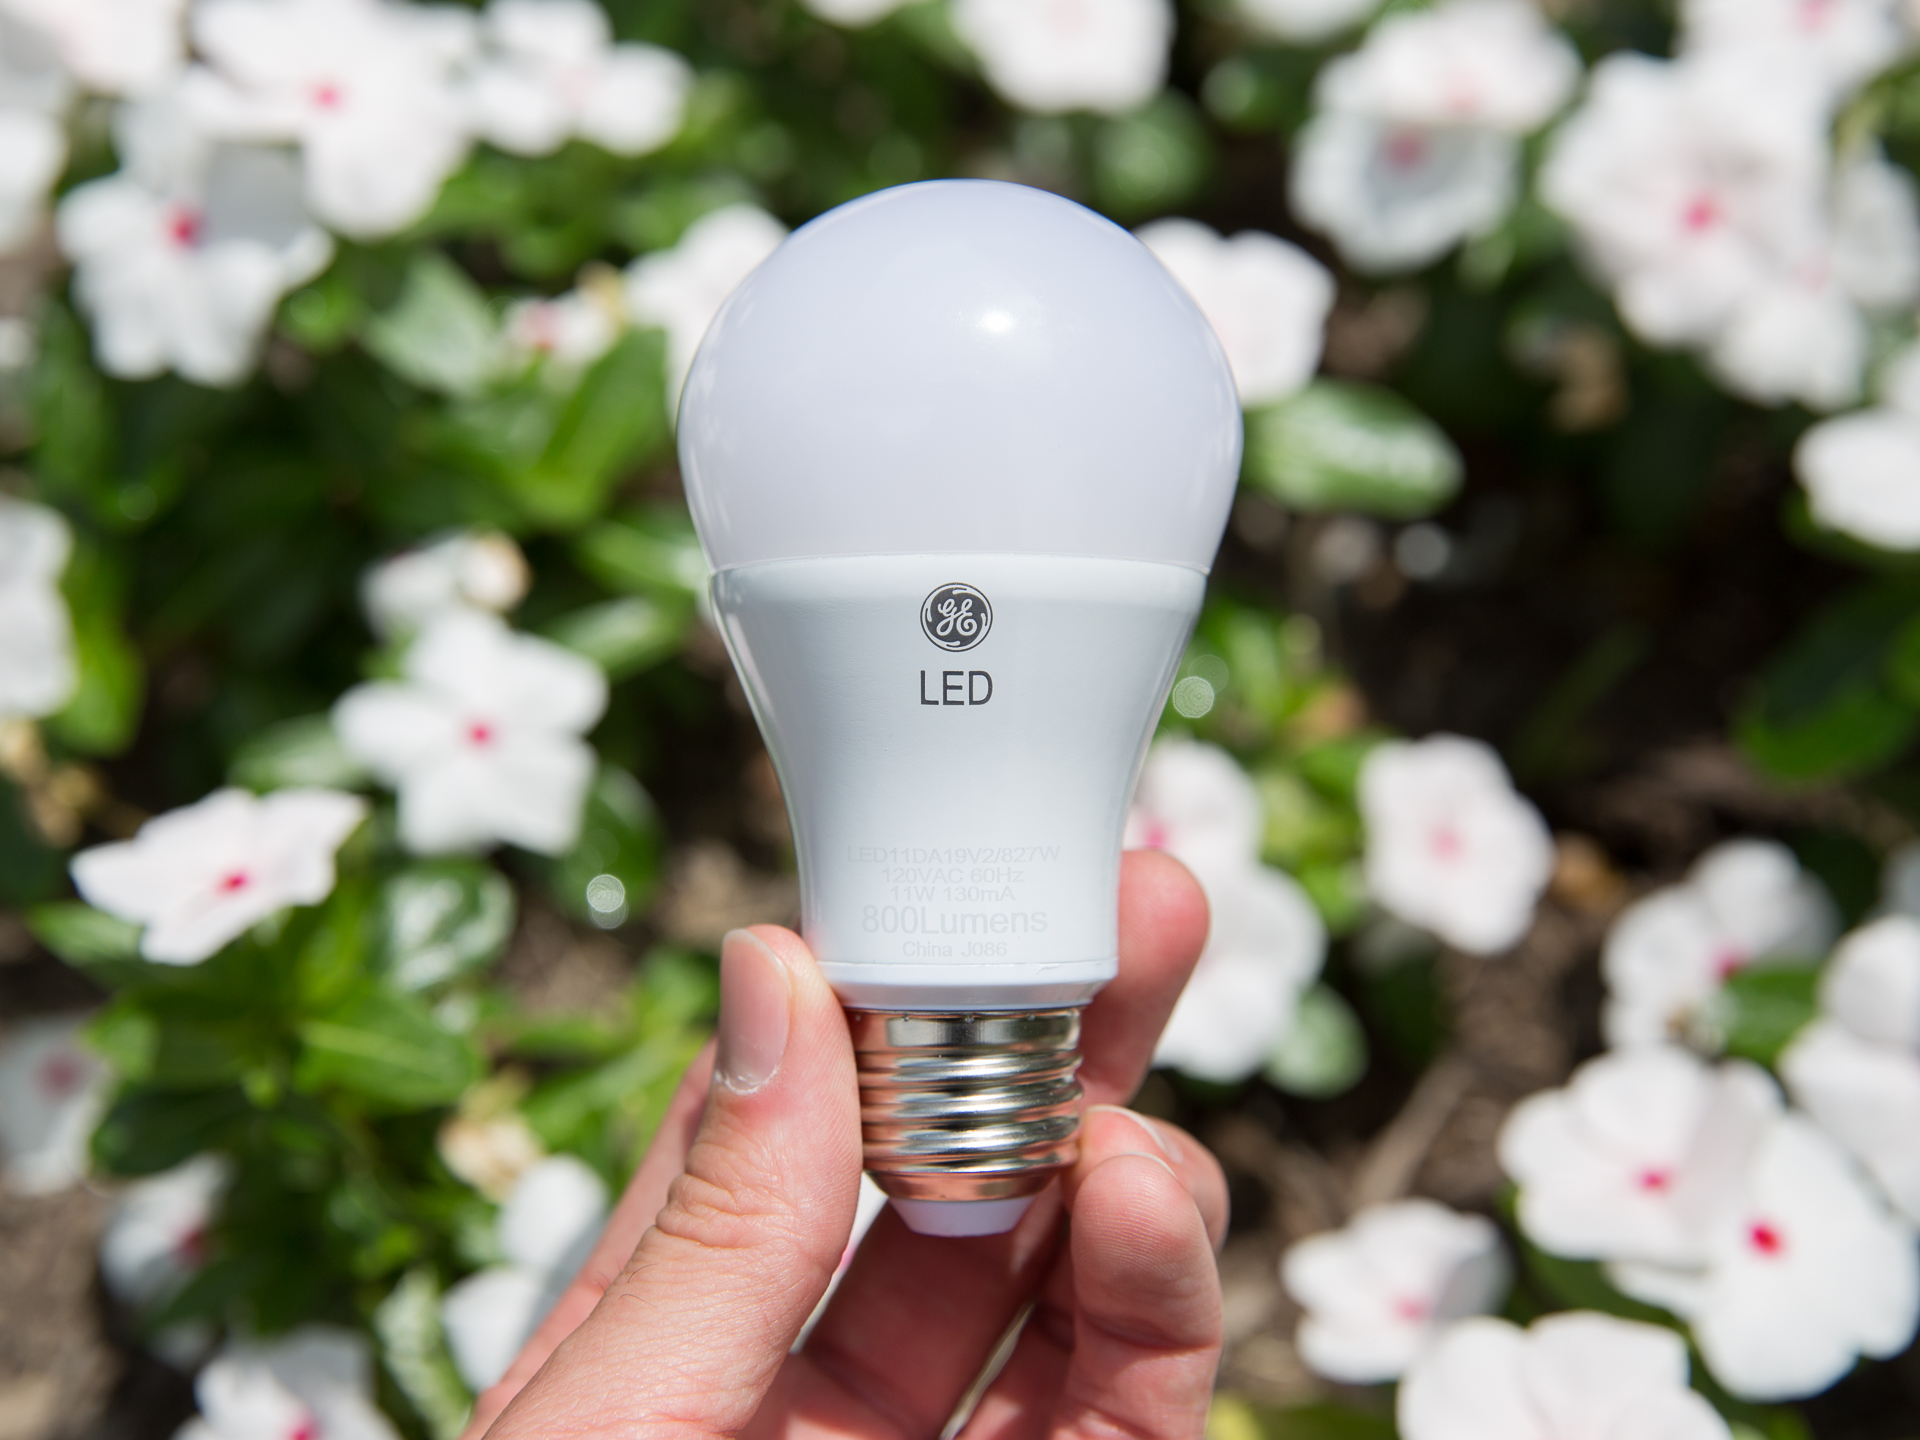 ge-60w-replacement-led-product-photos-2.jpg